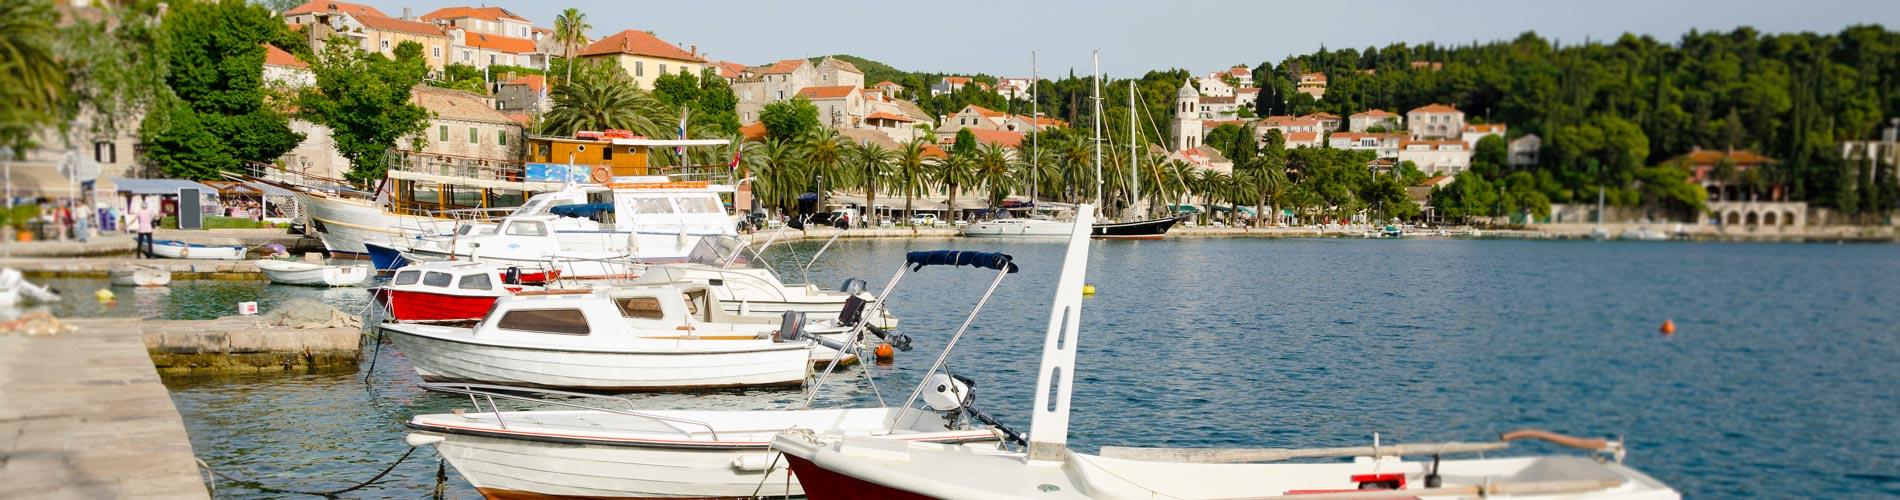 View of small boats and yachts in Cavtat Harbor,.jpg